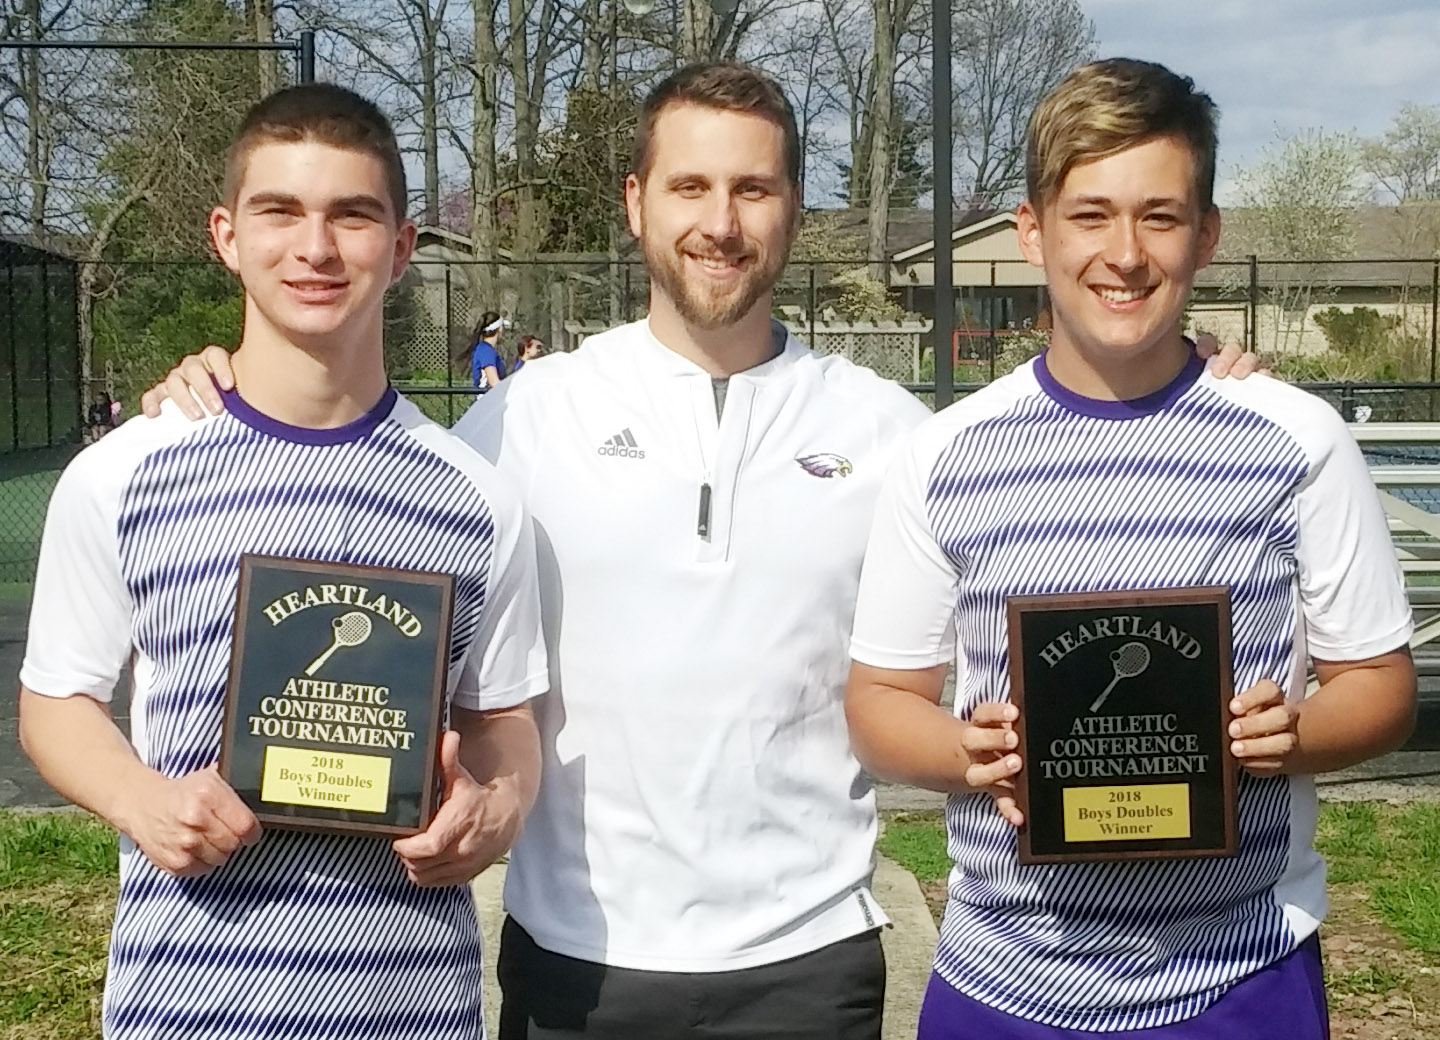 CHS boys' doubles team, senior Cass Kidwell, at left, and his classmate Cody Davis won three rounds to take home the Heartland Conference tennis tournament championship. They are pictured with their coach, Tyler Hardy.